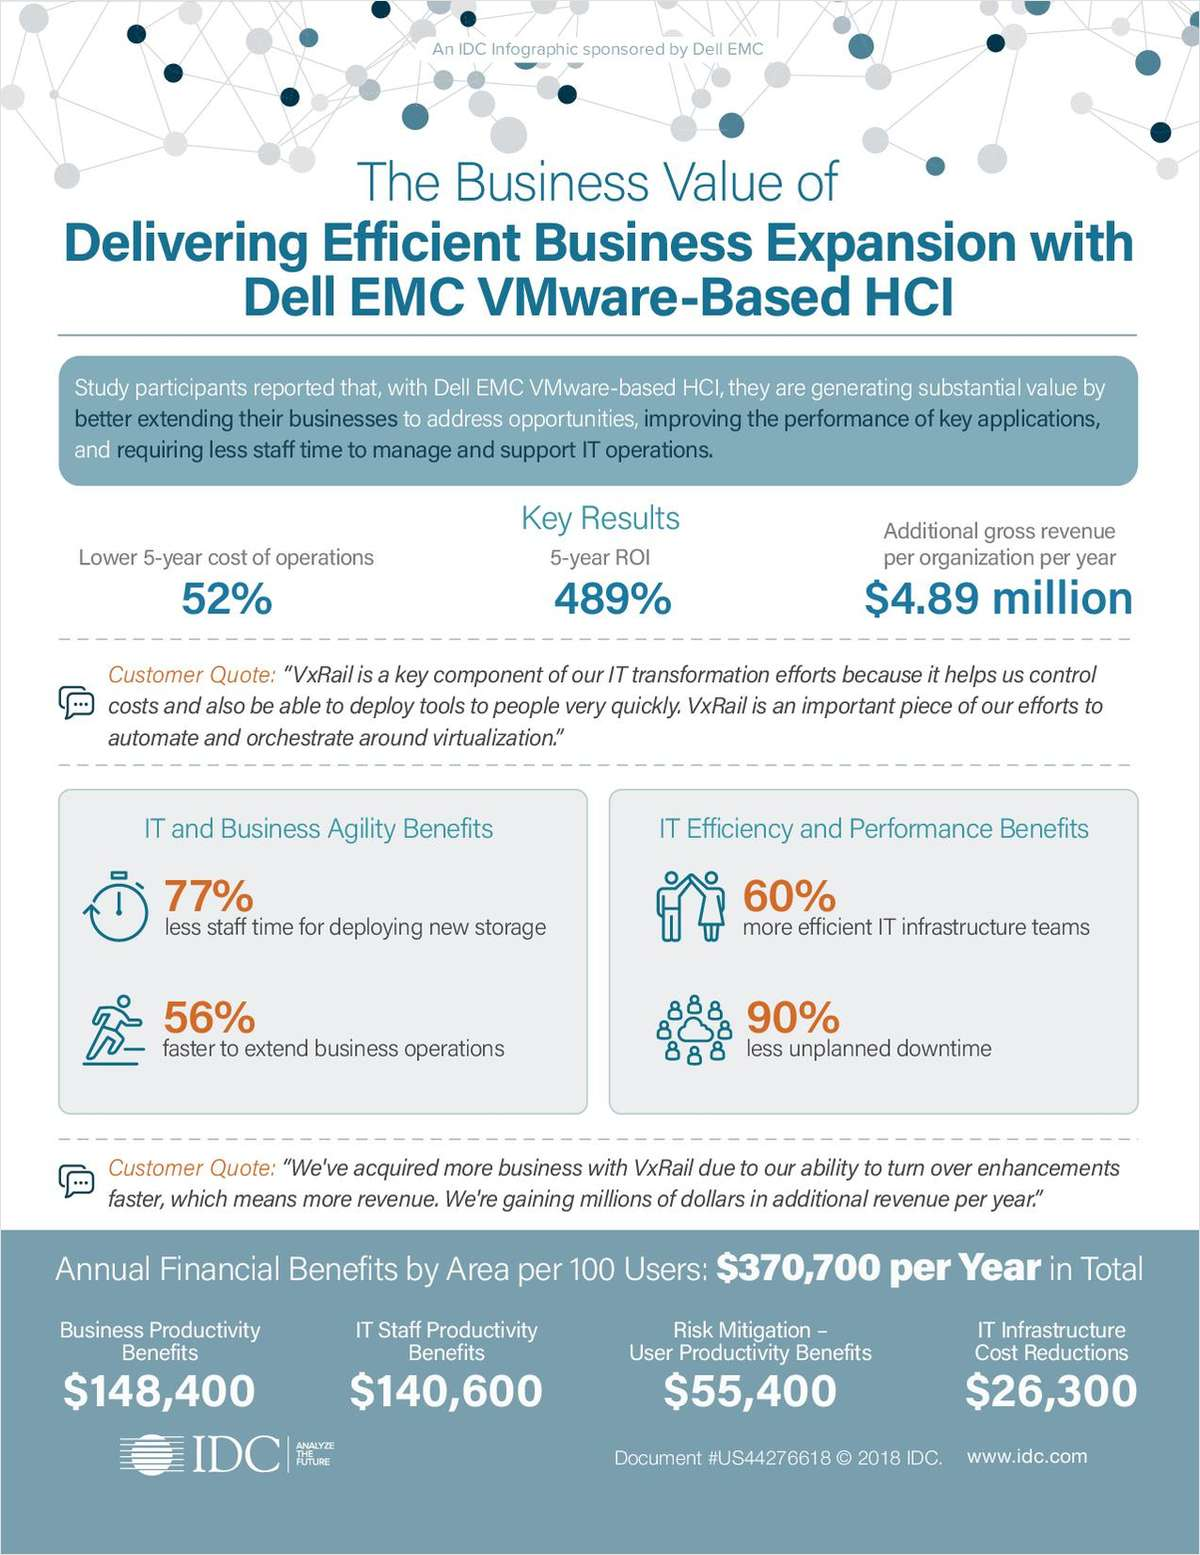 The Business Value of Delivering Efficient Business Expansion with Dell EMC VMware-Based HCI